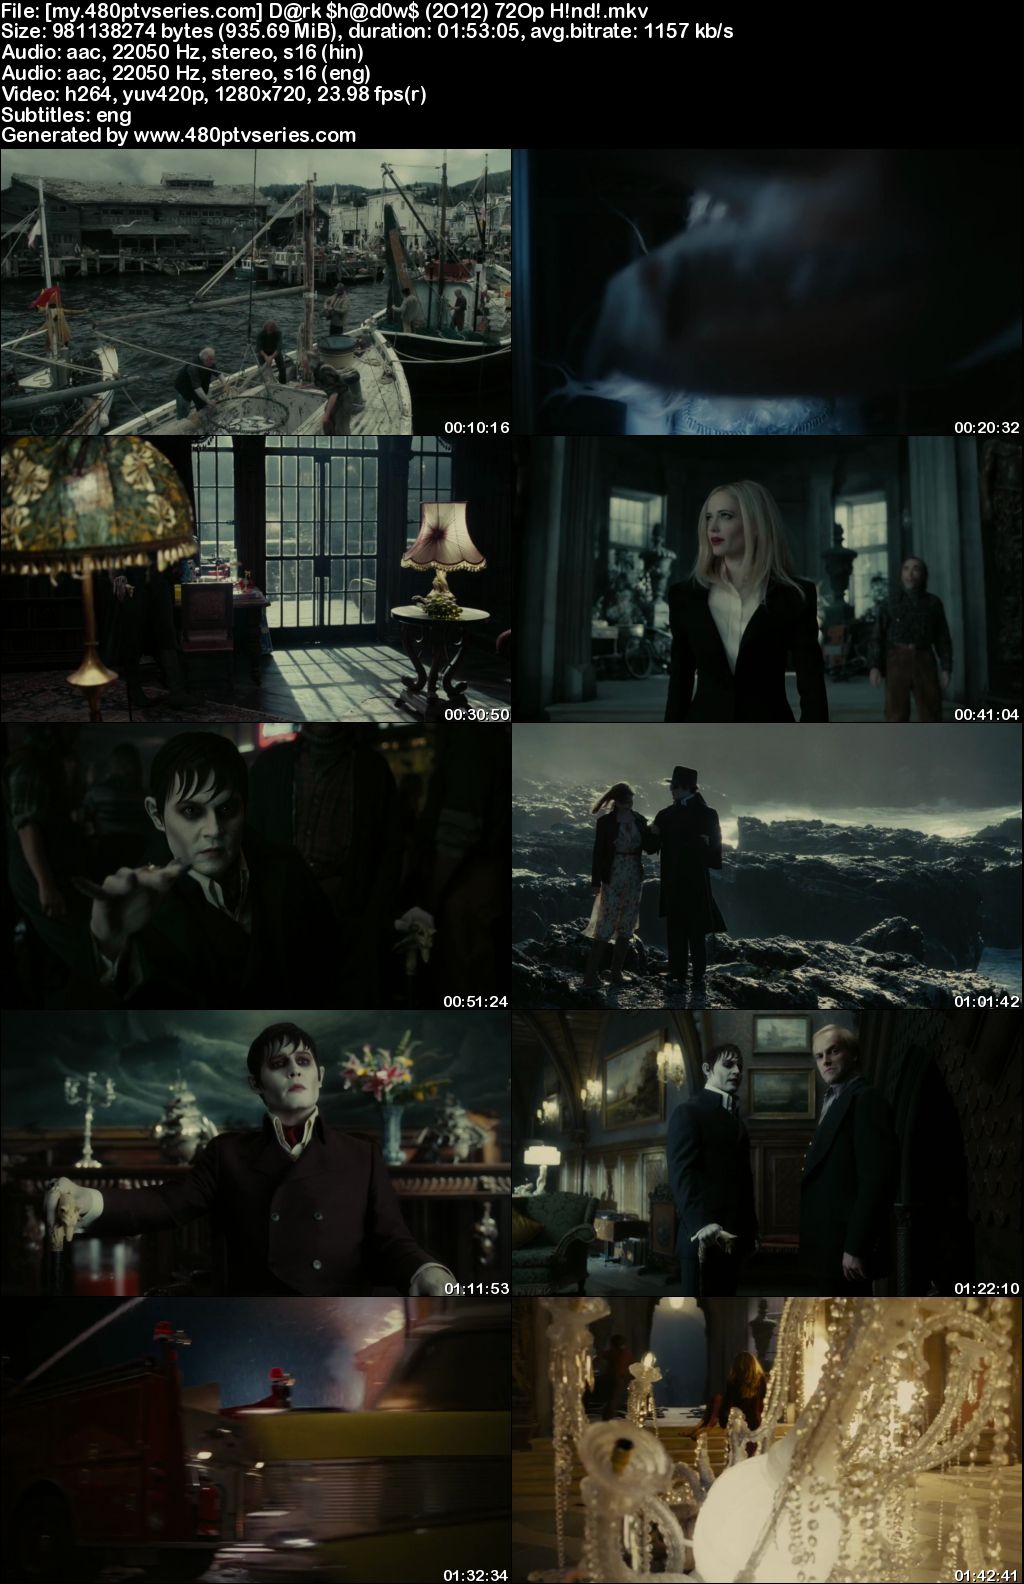 Watch Online Free Dark Shadows (2012) Full Hindi Dual Audio Movie Download 480p 720p Bluray